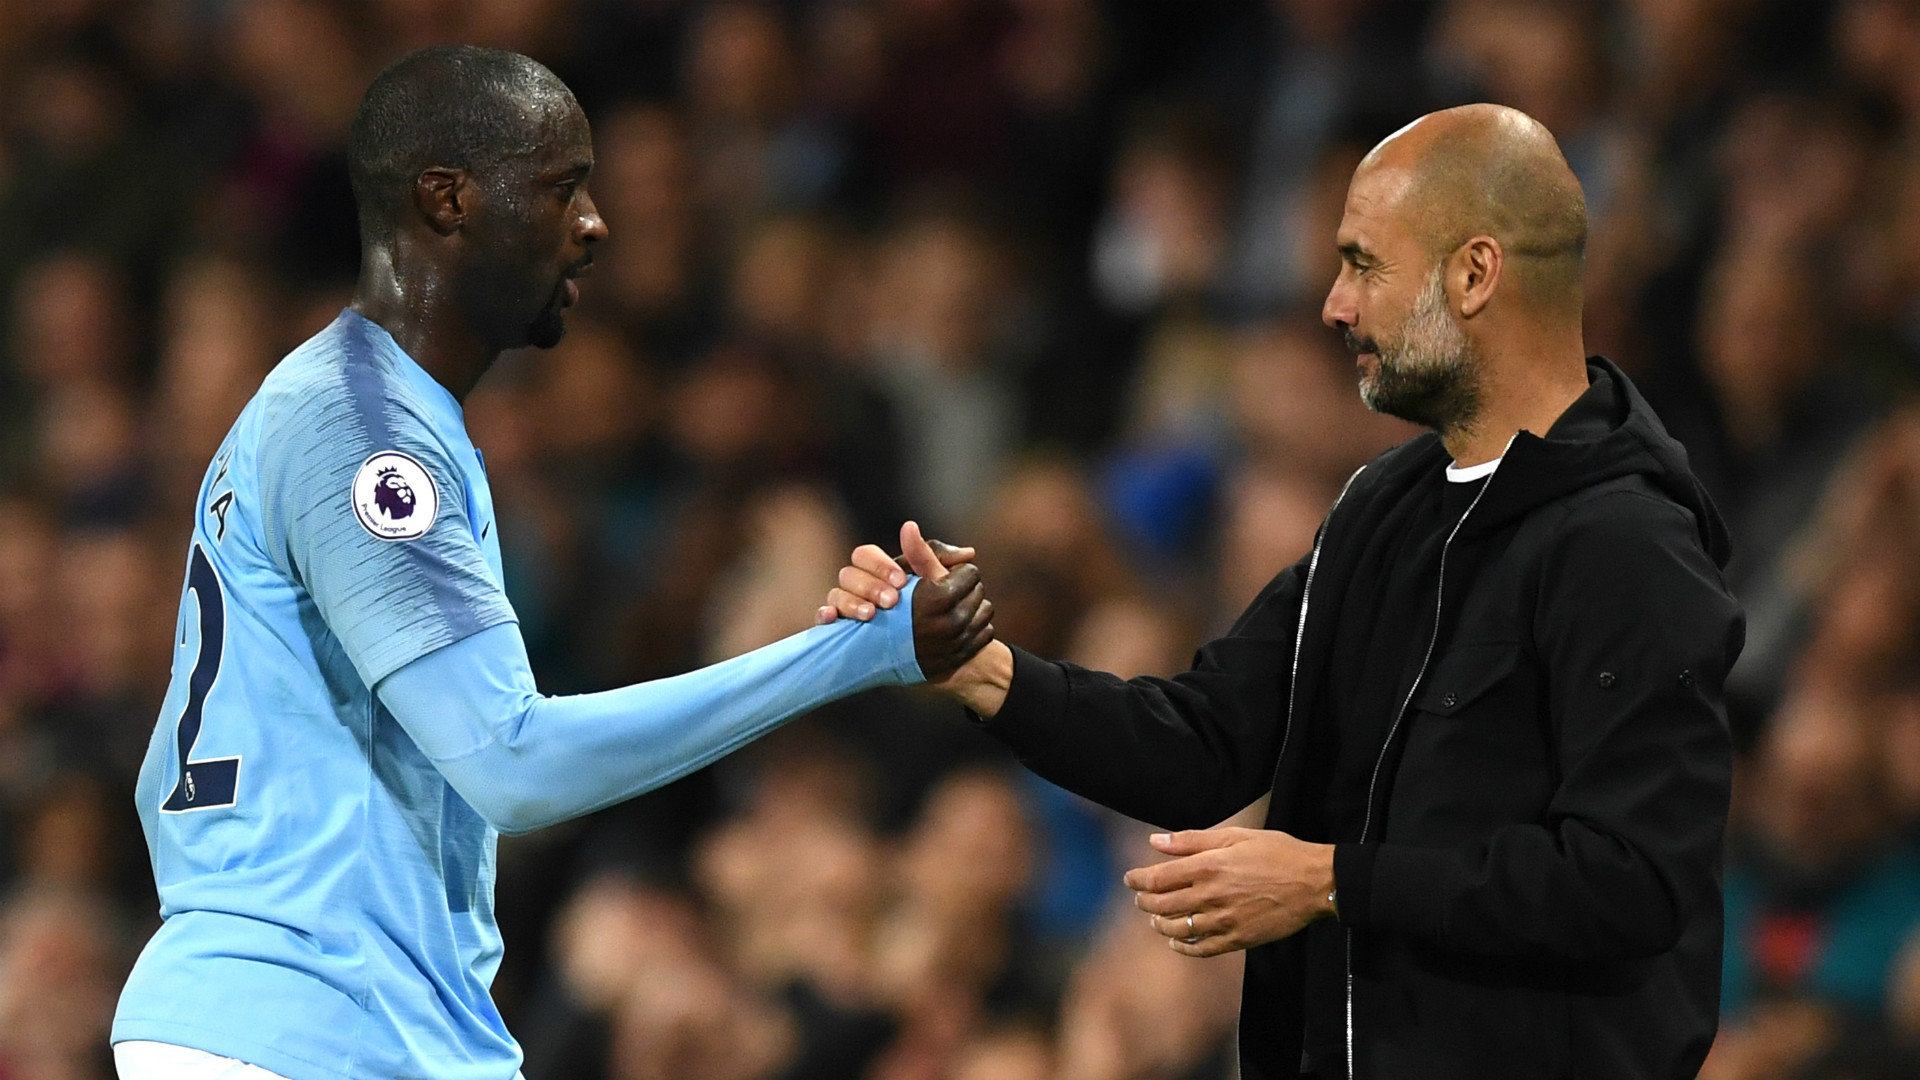 Yaya Toure's astonishing Guardiola claim: Pep has a problem with African players